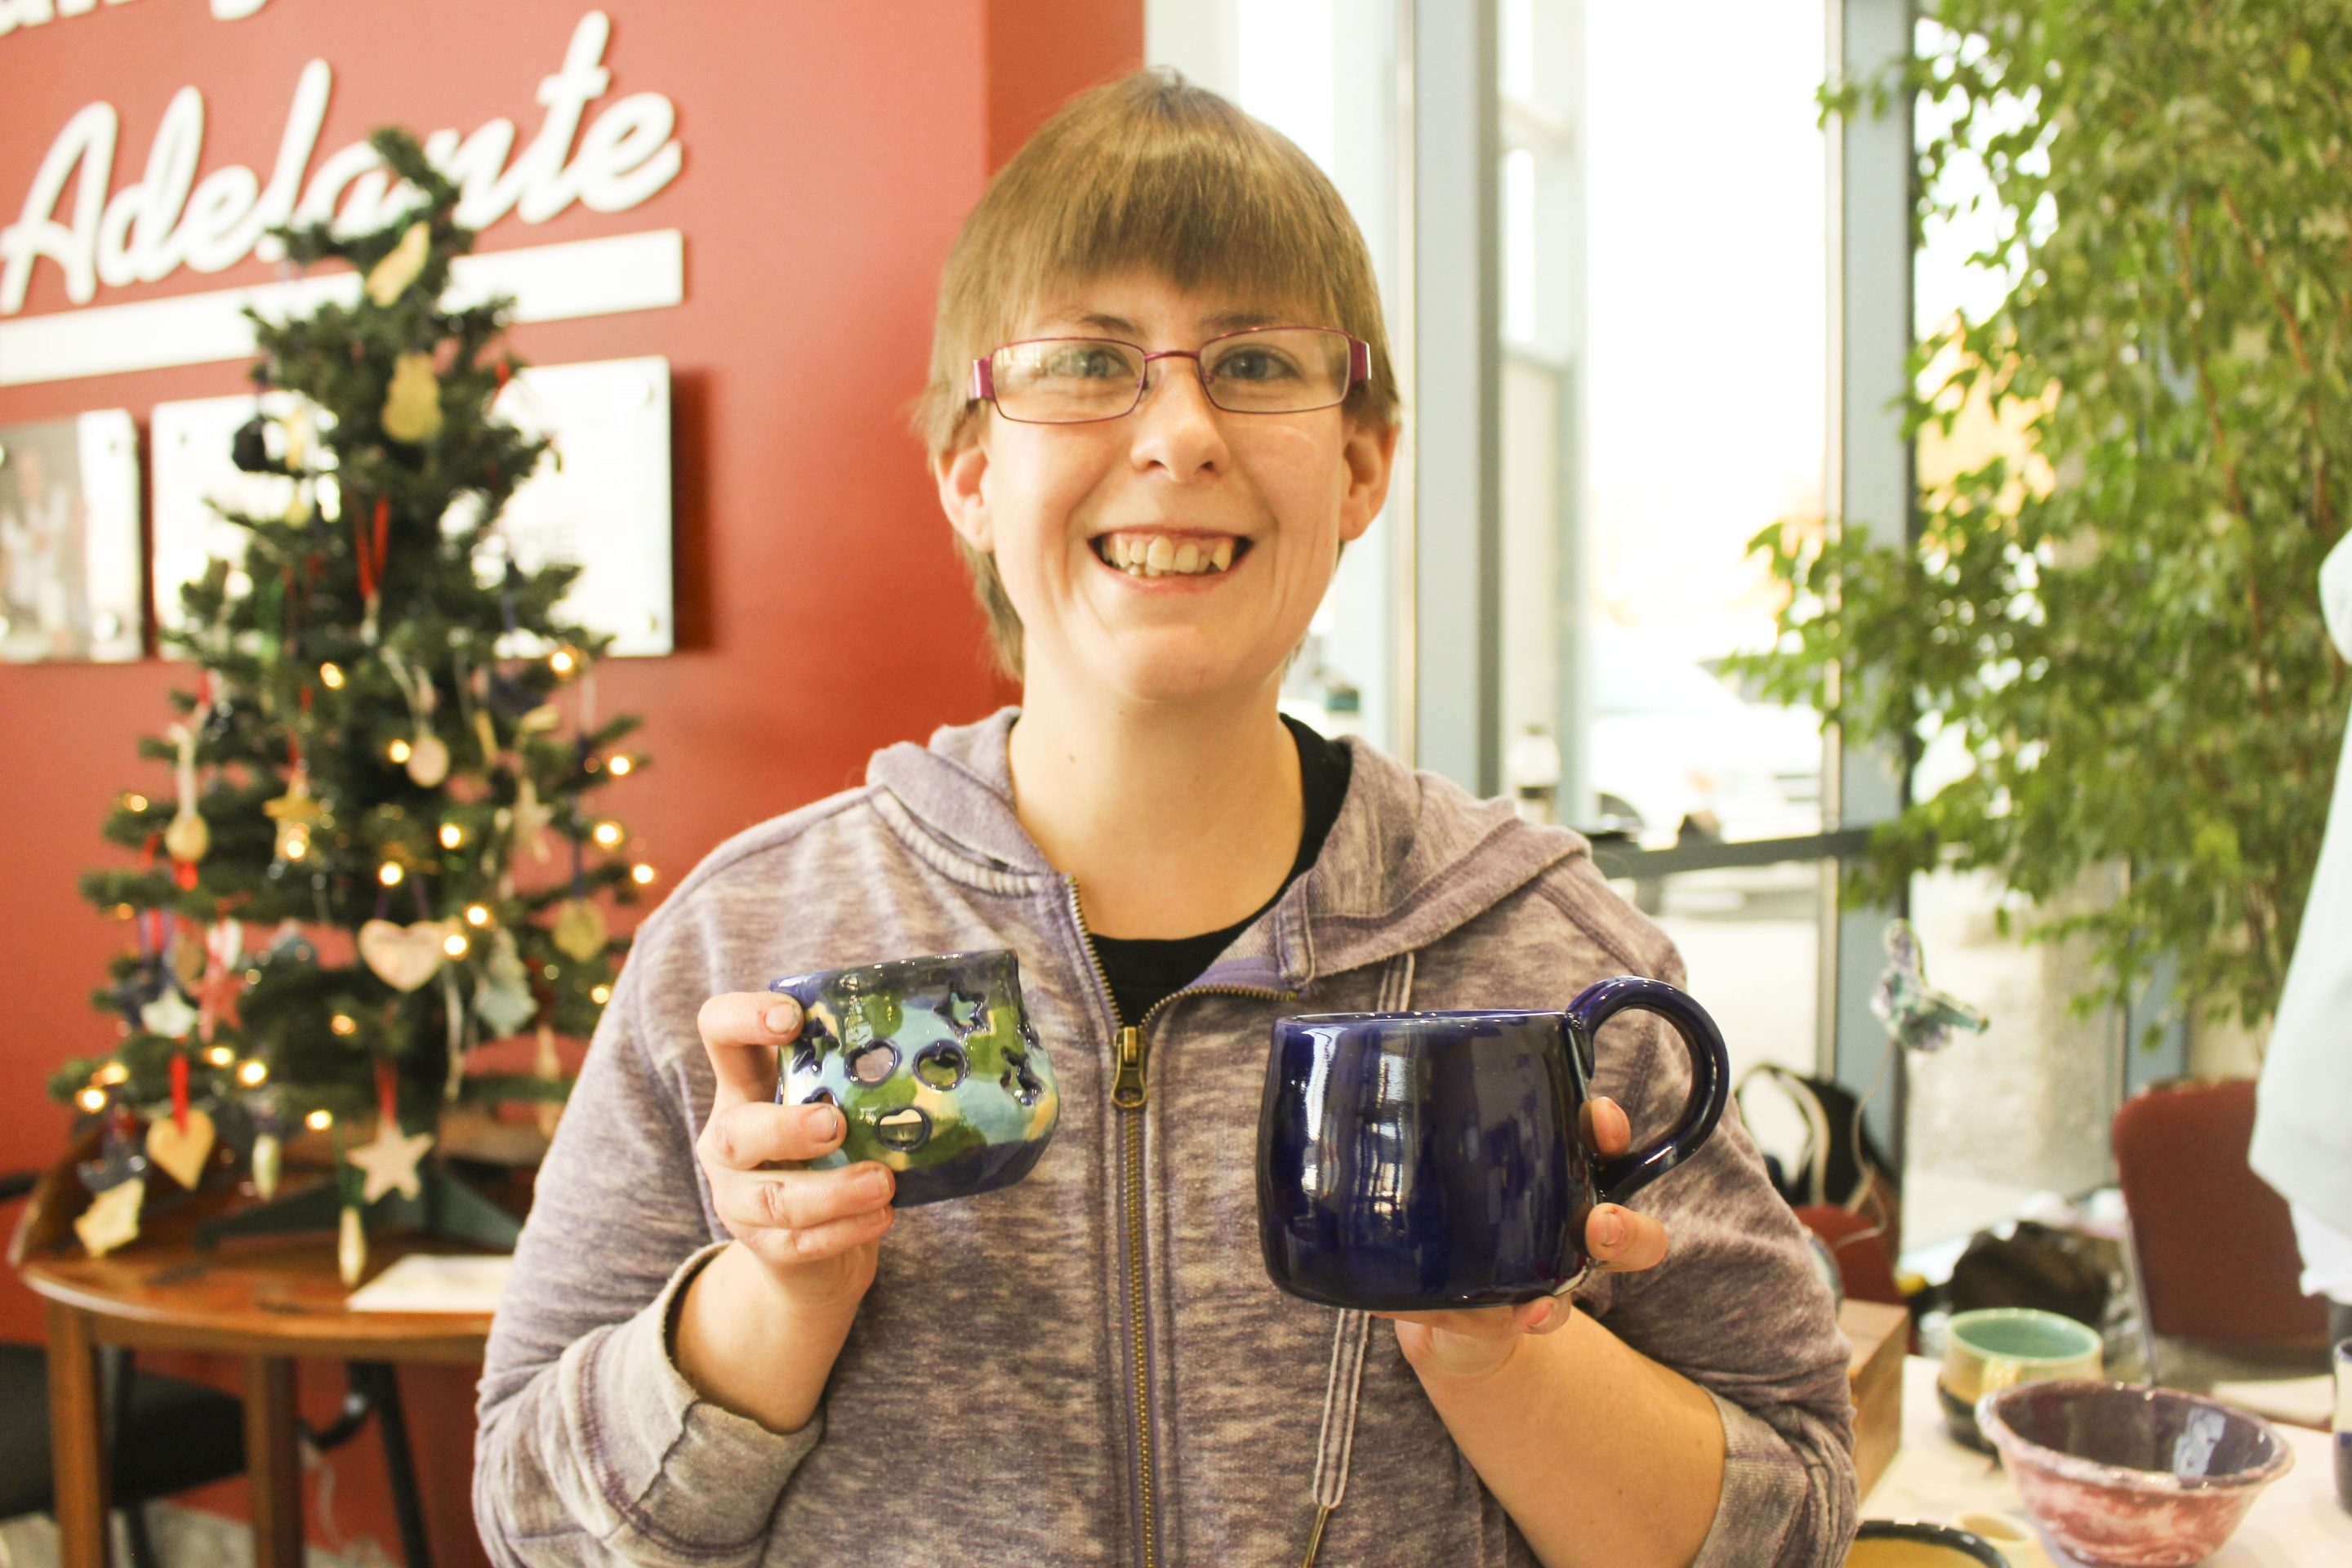 Jolene Blaylock, a client, holds up two of her mugs she created in the Arts & Animals program in the Adelante lobby